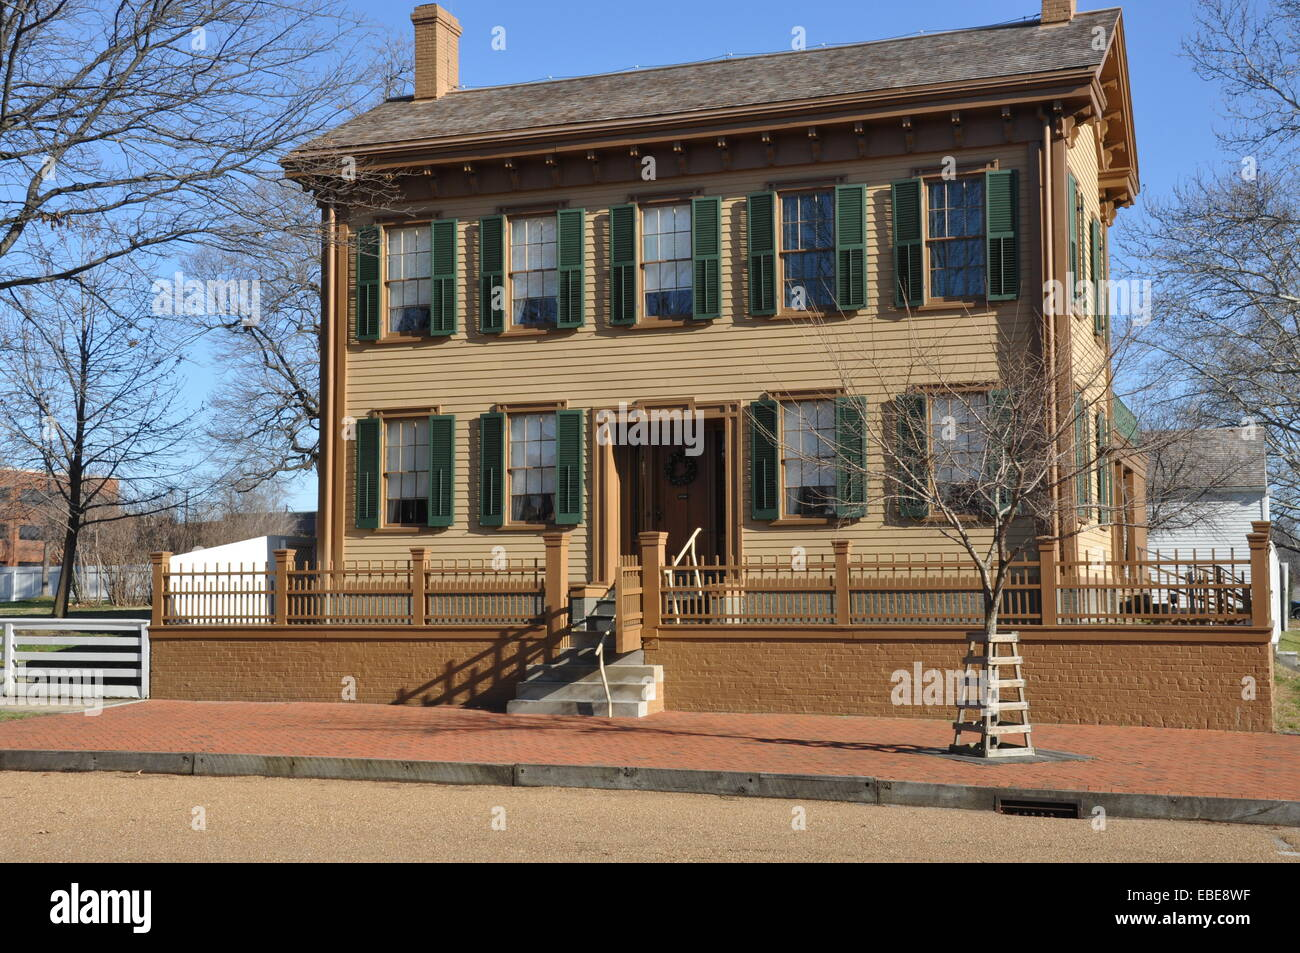 abraham-lincolns-home-in-springfield-illinois-EBE8WF.jpg